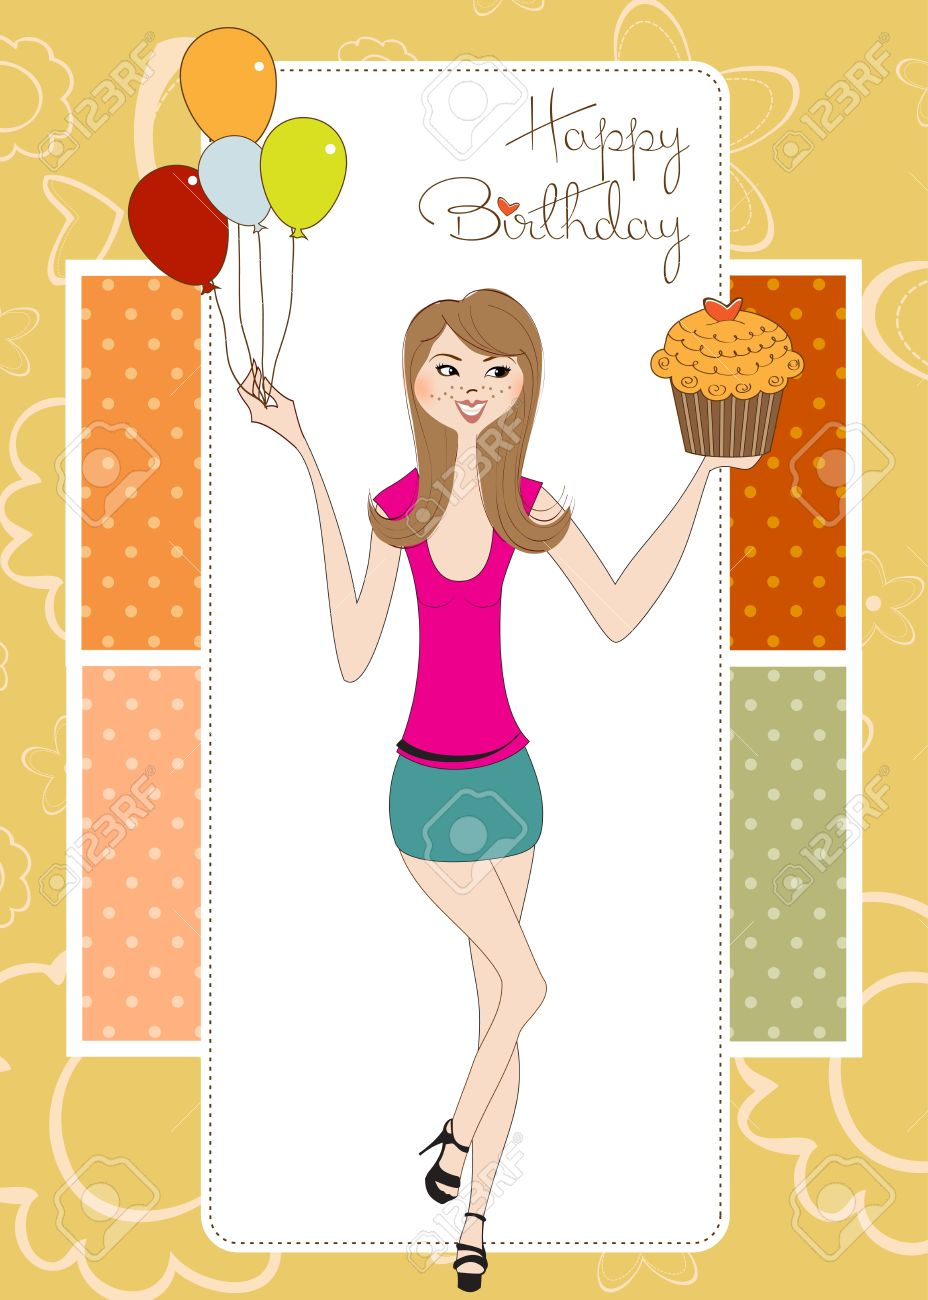 Sweet Sixteen Birthday Card With Young Girl Royalty Free Cliparts – Lady Birthday Card